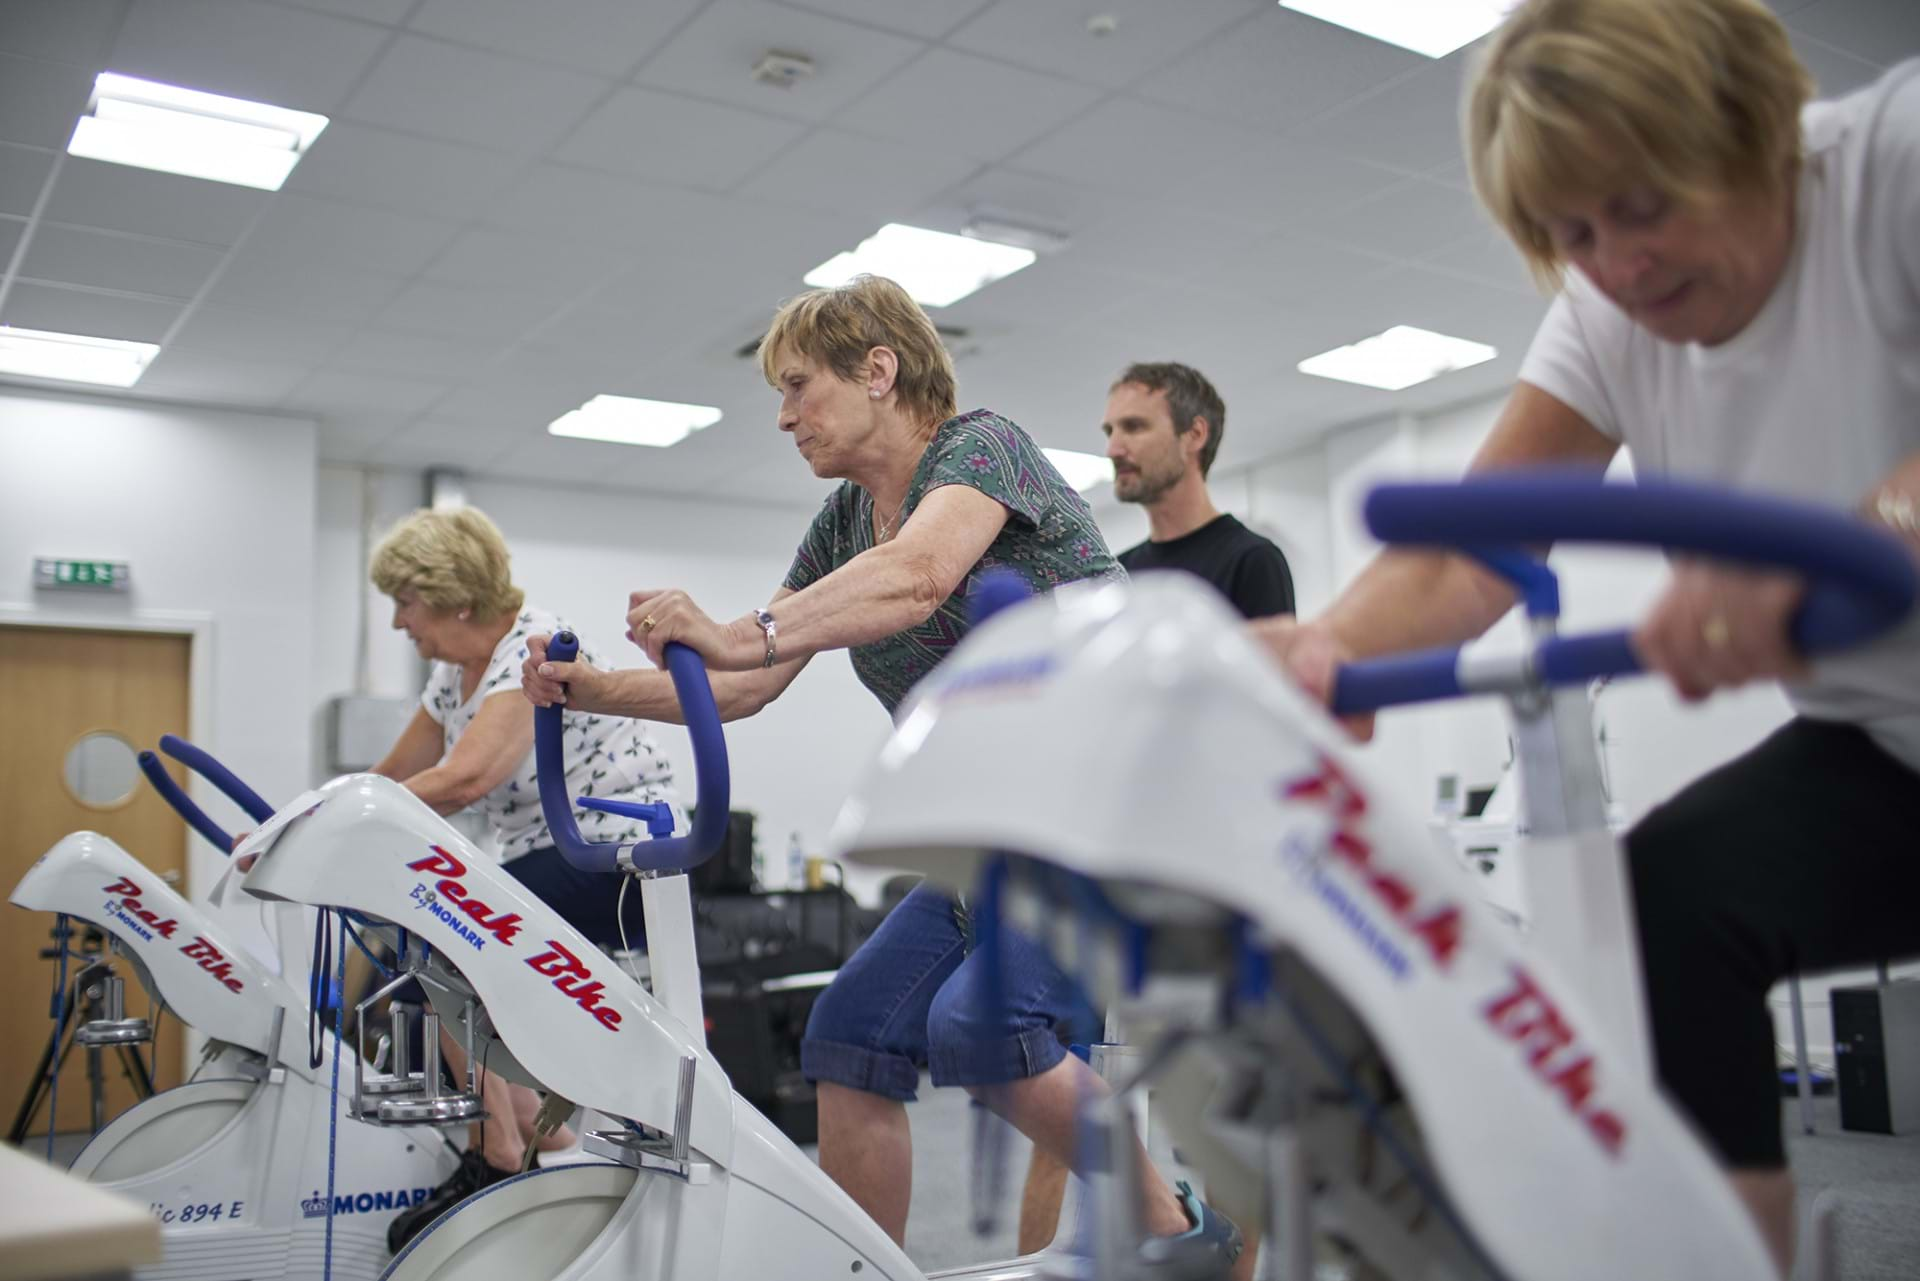 Study participants on exercise bikes